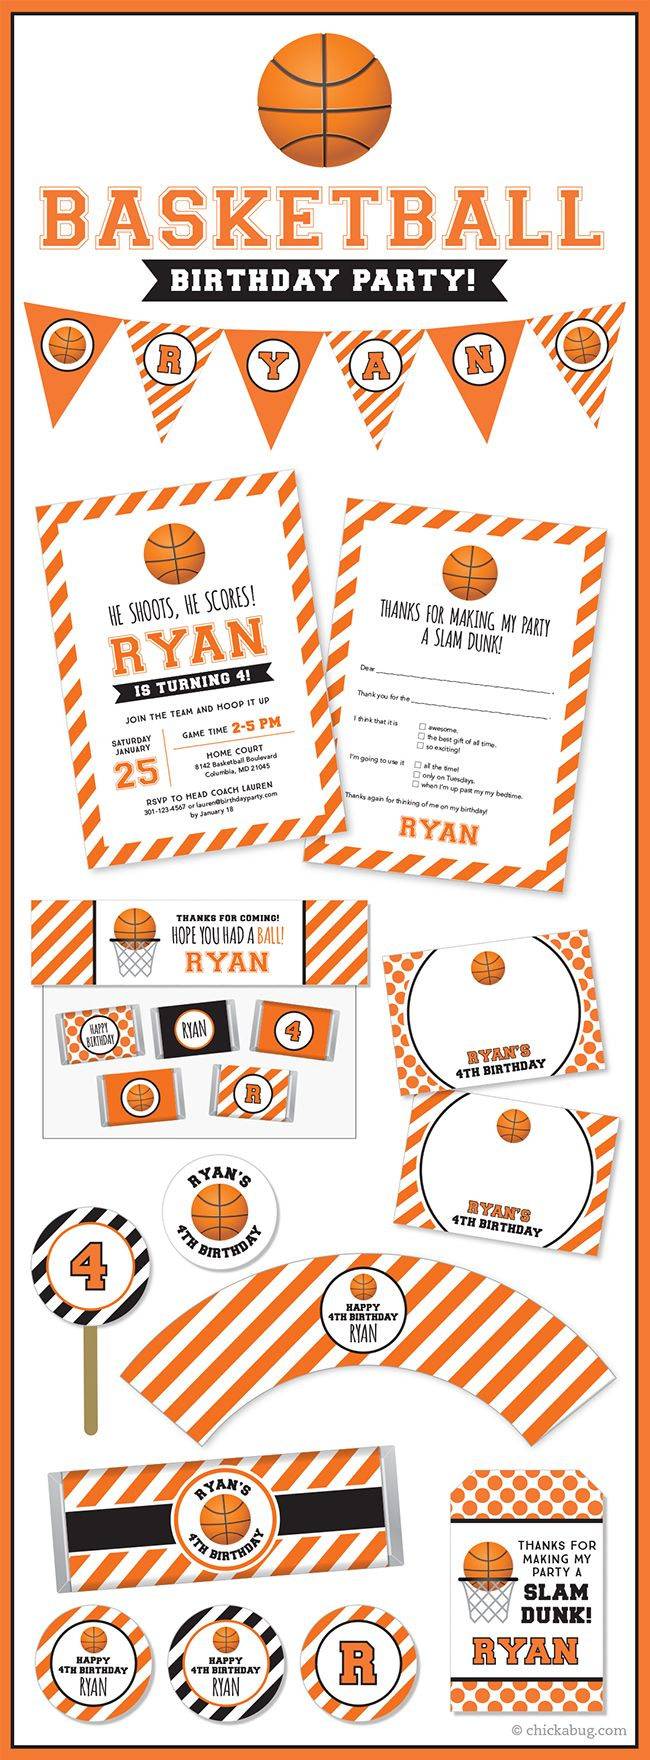 Basketball birthday party! Paper goods & printables from Chickabug. #basketballparty